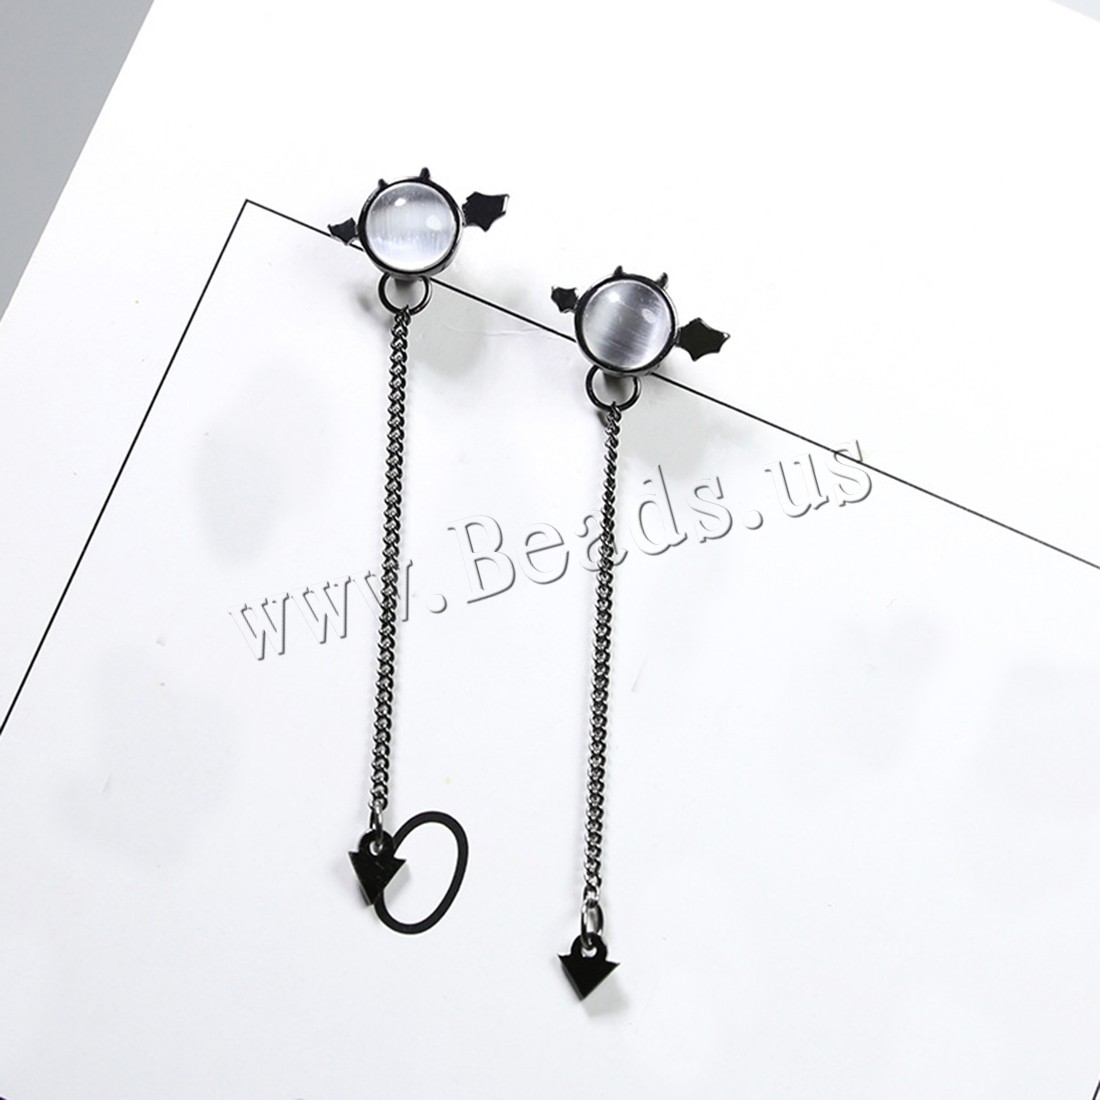 Buy Cats Eye Earring 925 Sterling Silver Cats Eye plumbum black color plated hypo allergic & woman 13x8mm 4x5mm 34mm Sold Pair